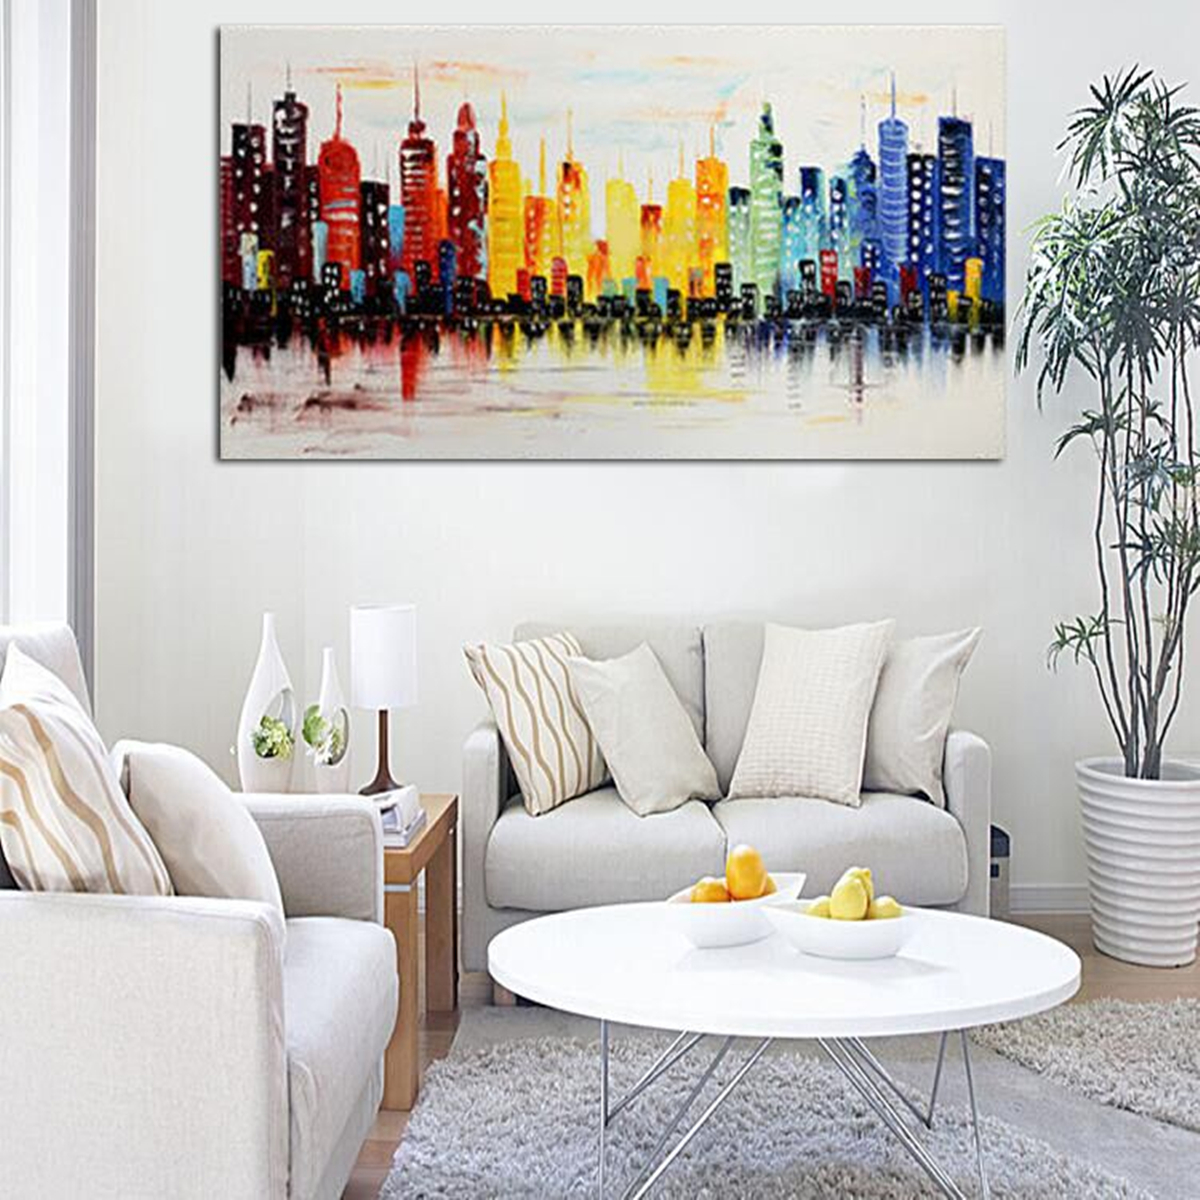 120x60cm modern city canvas abstract painting print living room art wall decor no frame Canvas prints for living room